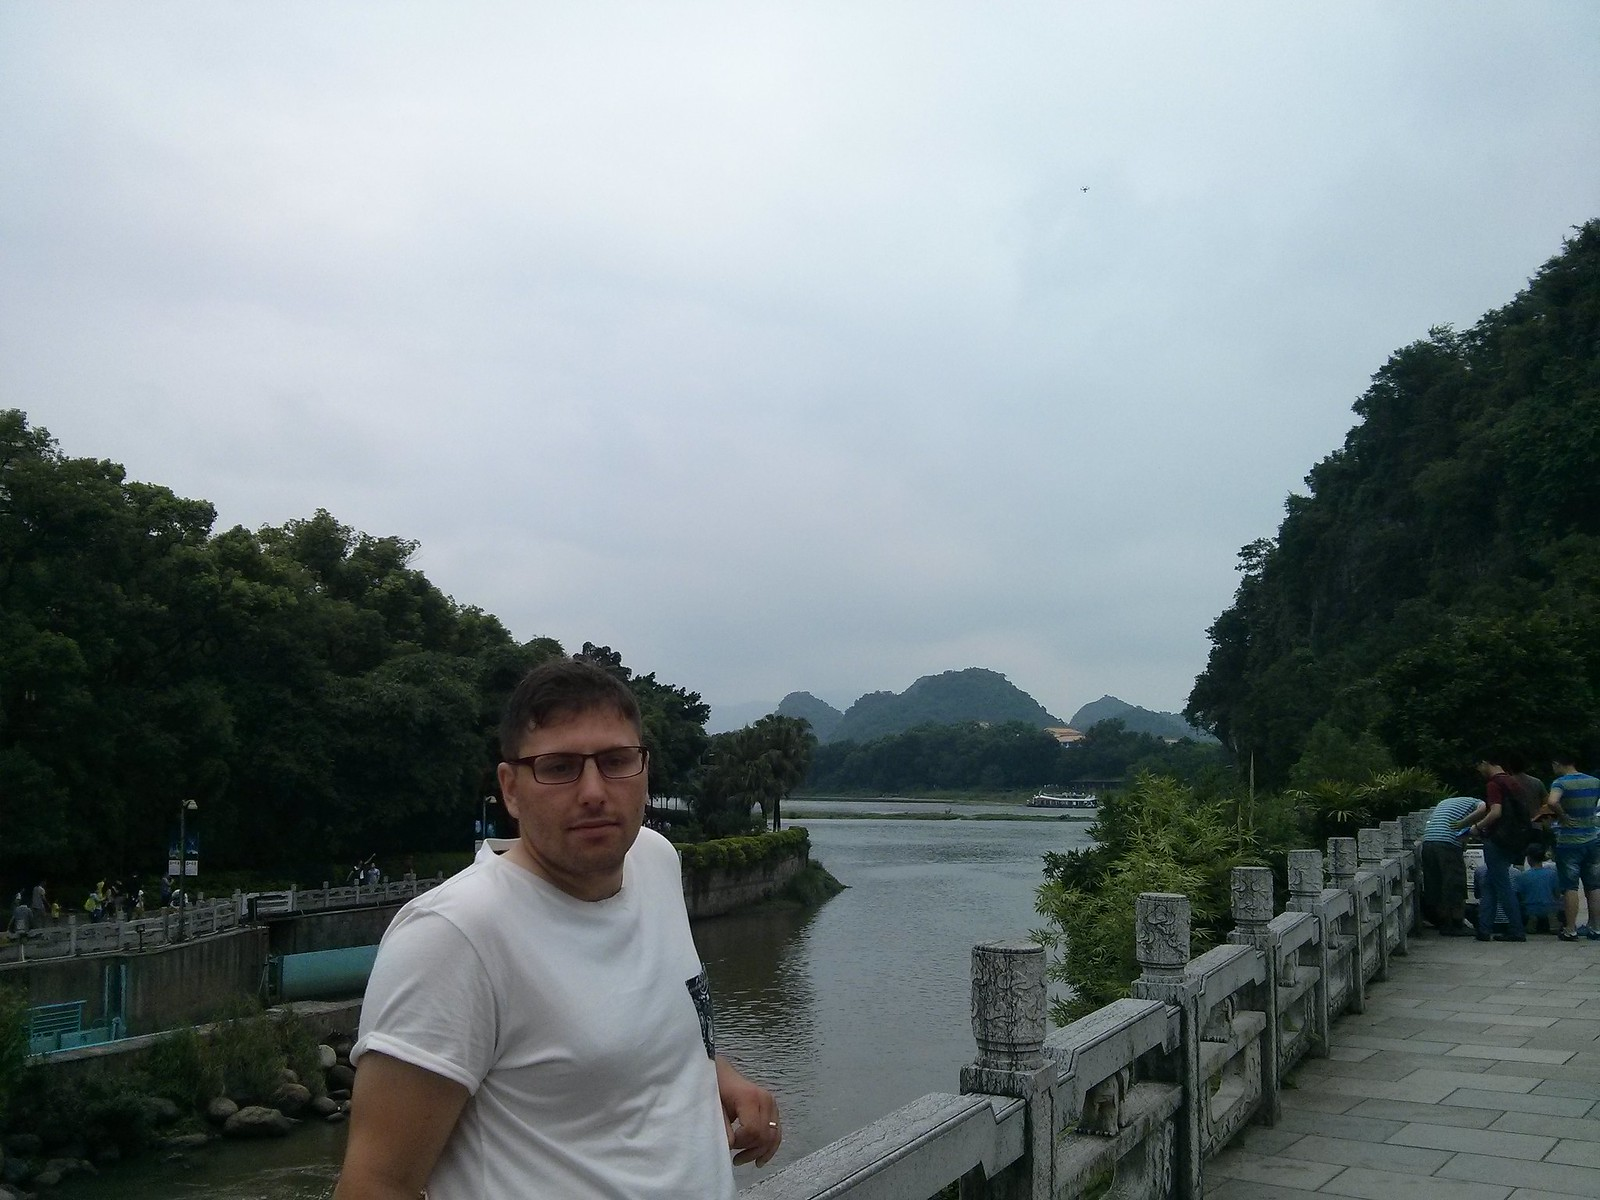 A Shenmue pilgrimmage: Visiting the scenic real-life locations from Sega's game